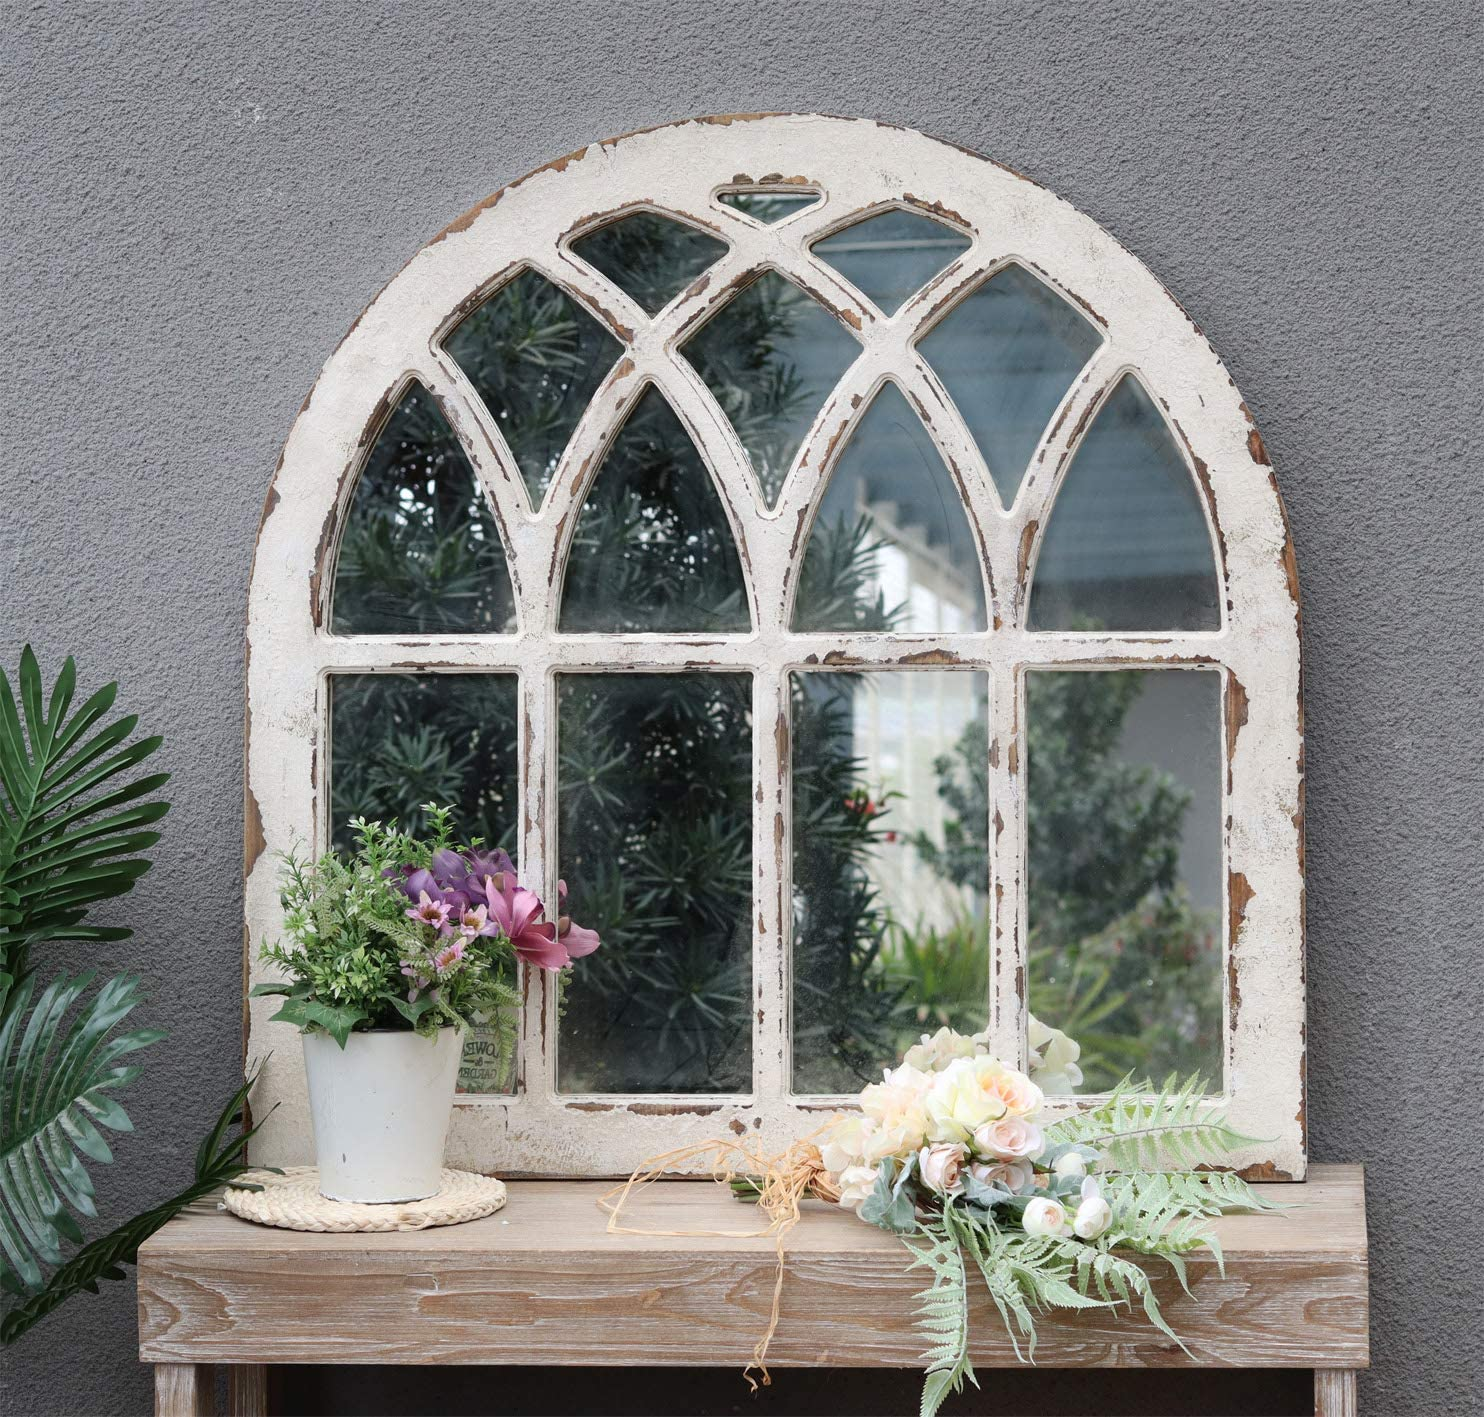 Rustic Arched Windowpane Wood Framed Wall Mirror, Cathedral Accent Wall Mirror, Shabby-Chic Farmhouse Wall Decor for Living Room, Bedroom, Dining Room or Entryway, Distressed White,31-7/8